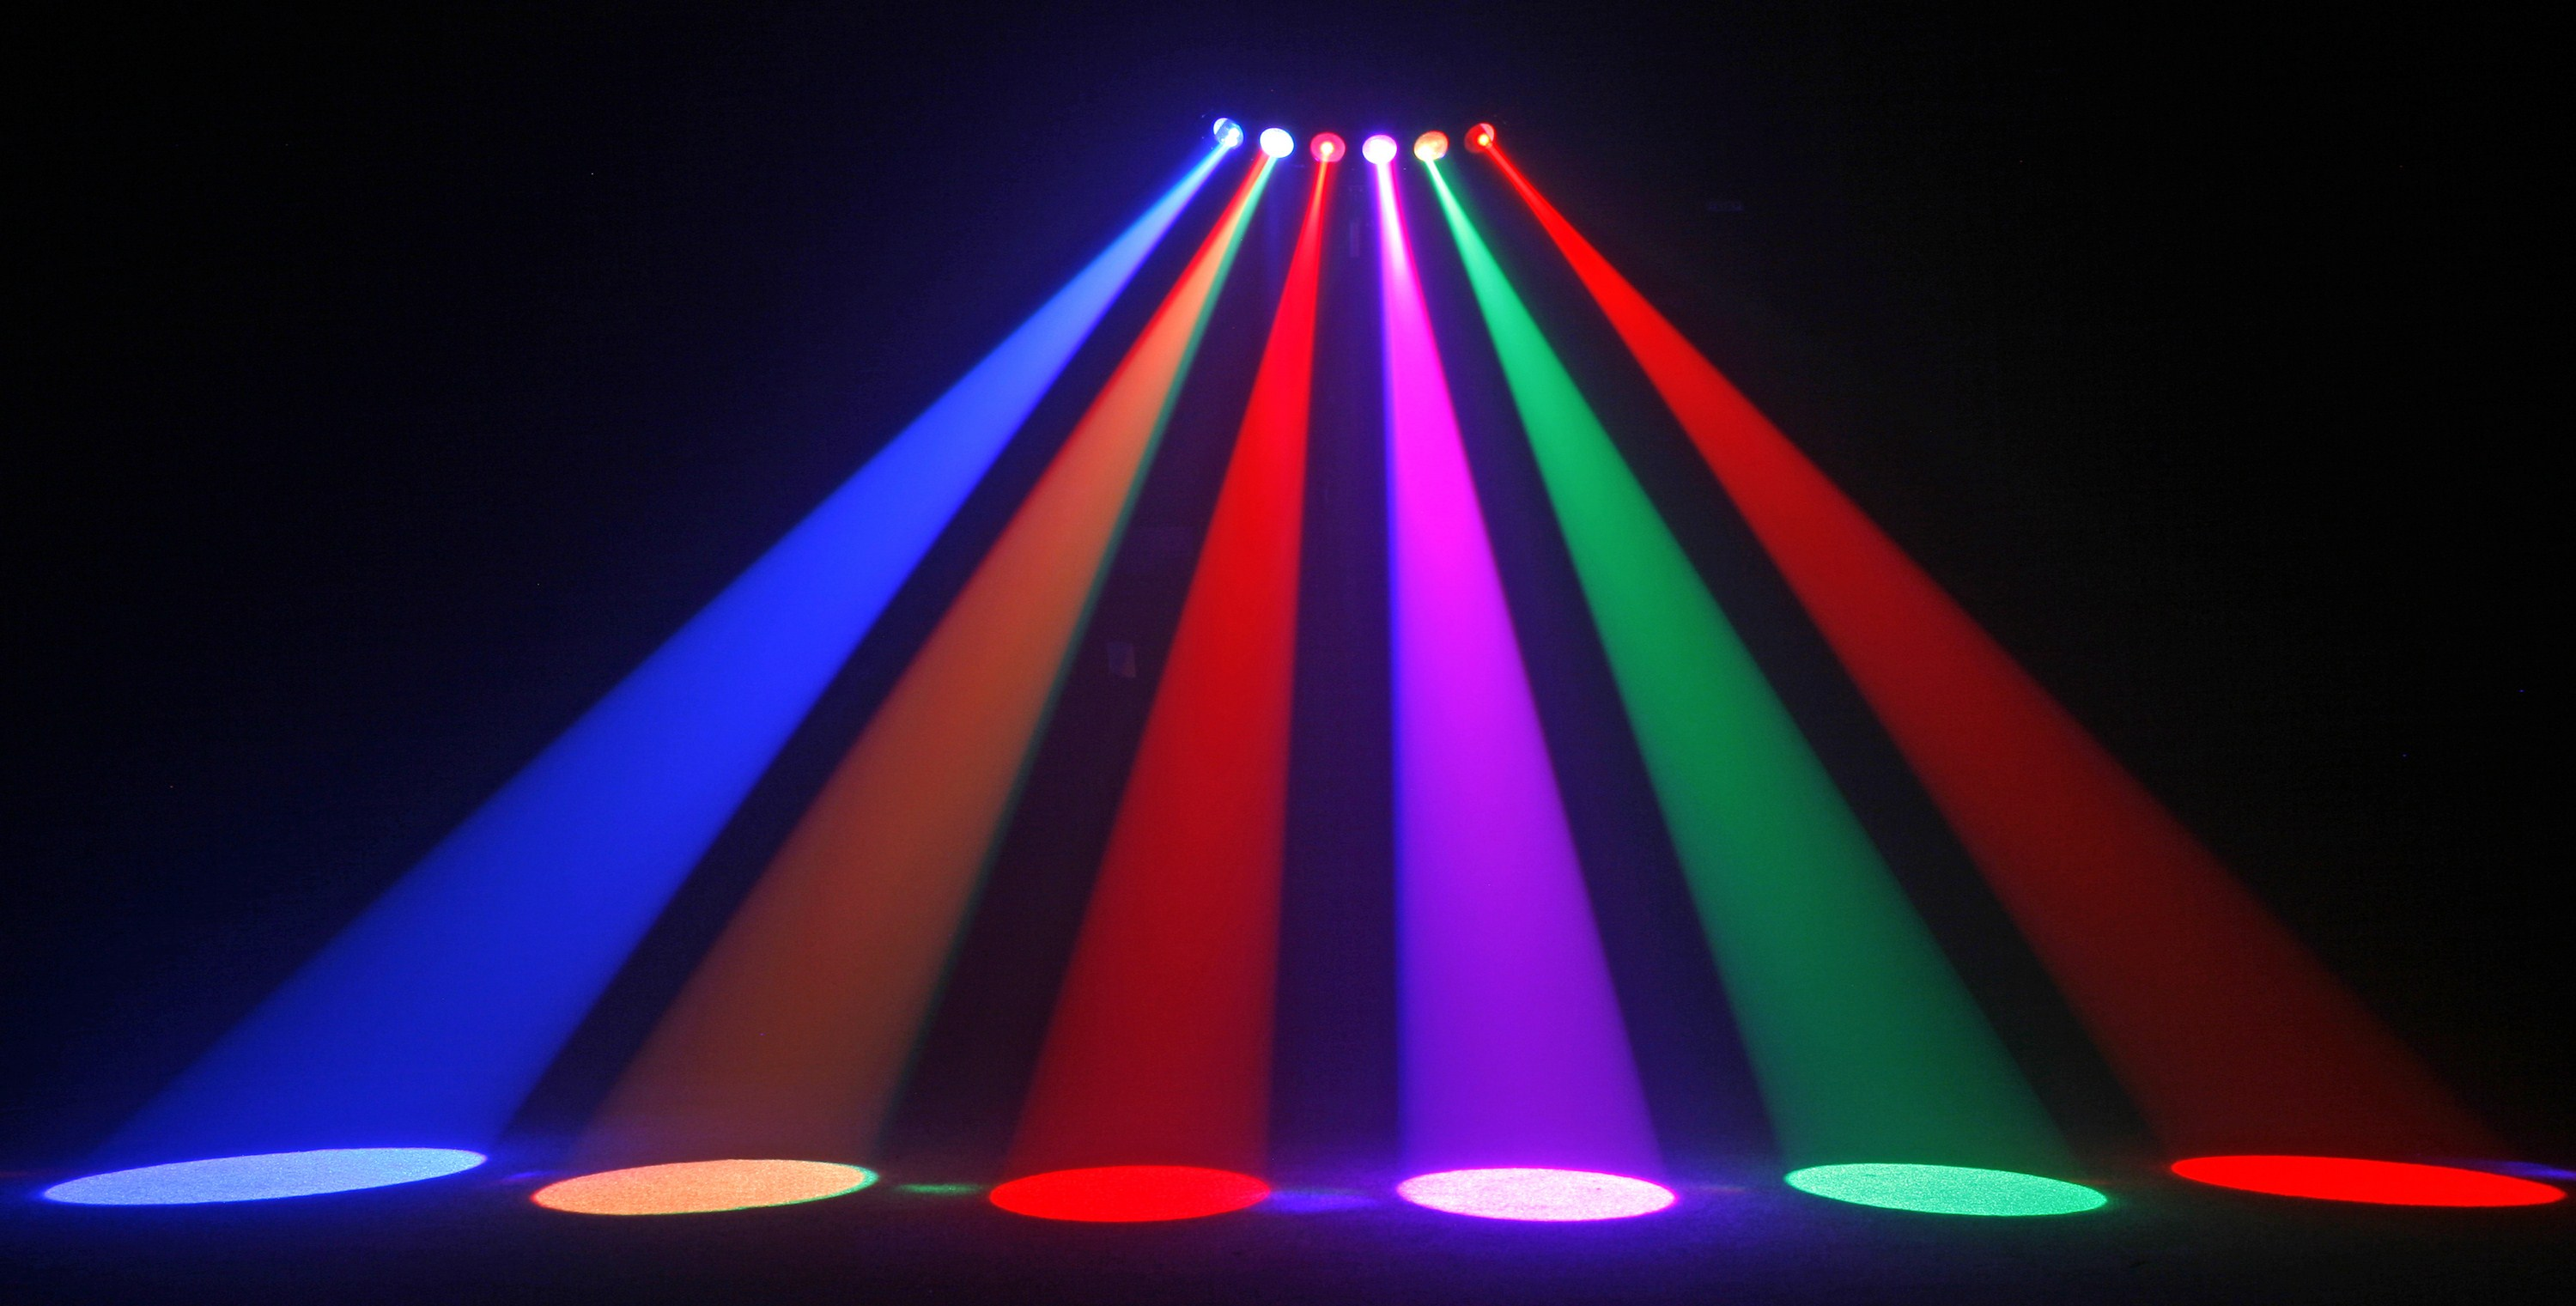 Led Dimmer Switch Jb Systems - Super Led Rainbow - Light Effects Dj & Club